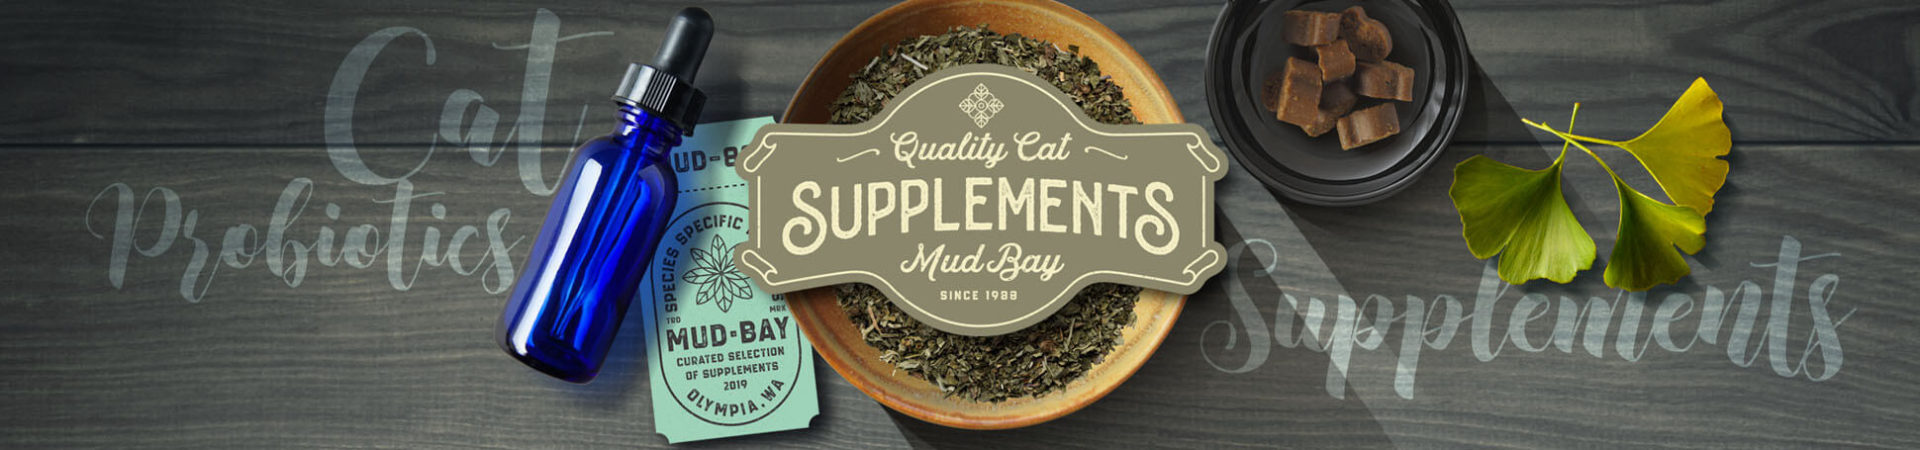 banner with different cat supplements in different forms